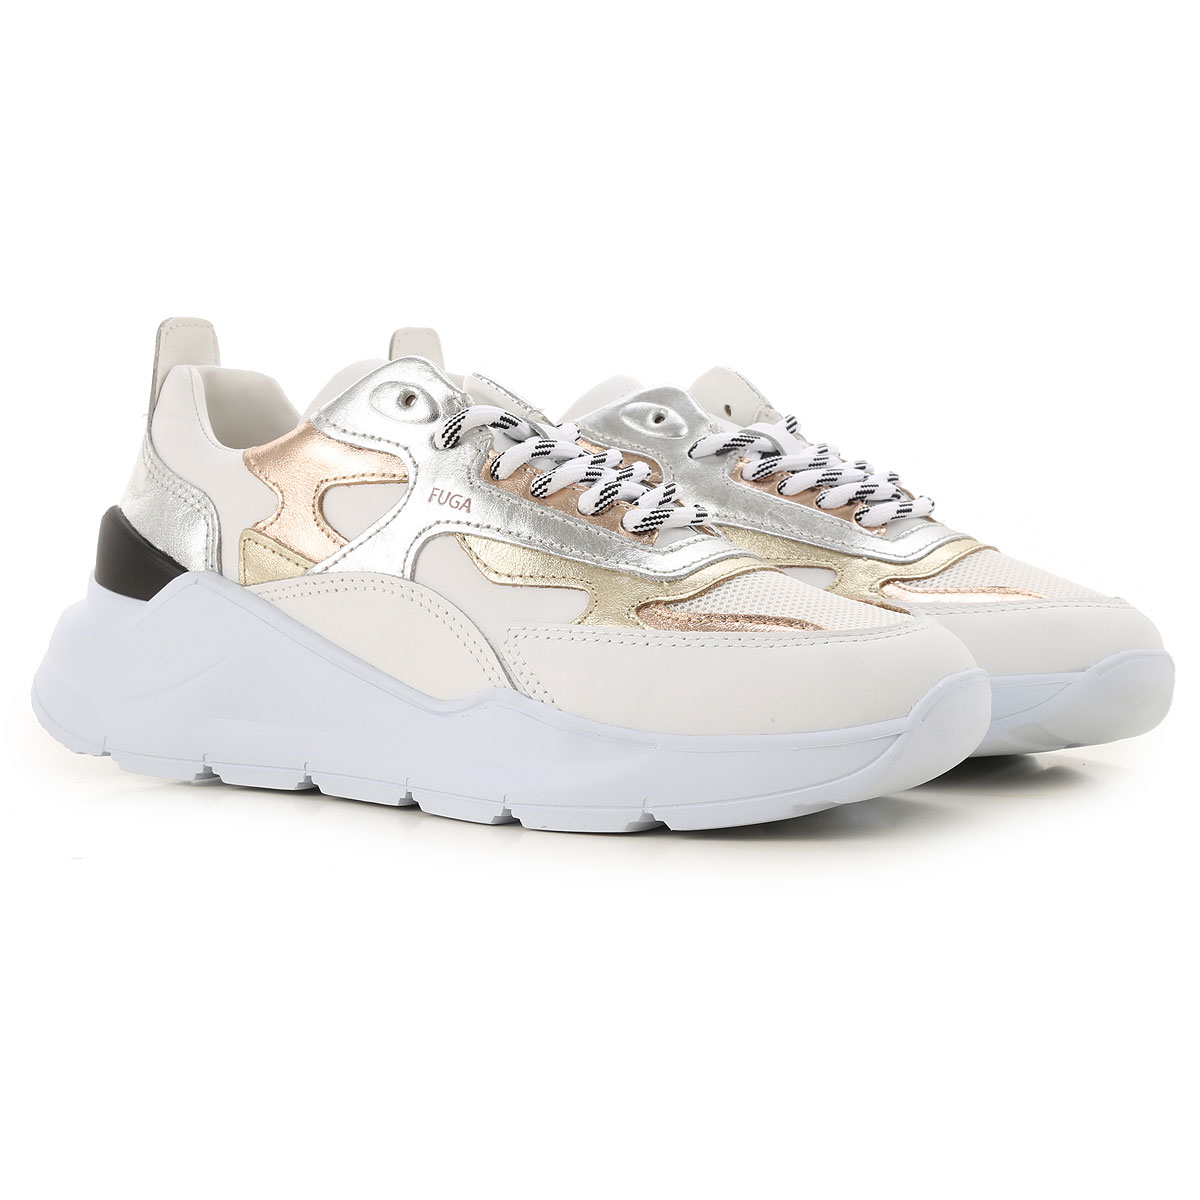 D.A.T.E. Sneakers for Women On Sale, White, Leather, 2019, US 8 5 - UK 6 - EU 39 - JP 25 US 7 5 - UK 5 - EU 38 - JP 24 US 9 - UK 6 5 - EU 40 - JP 25 5